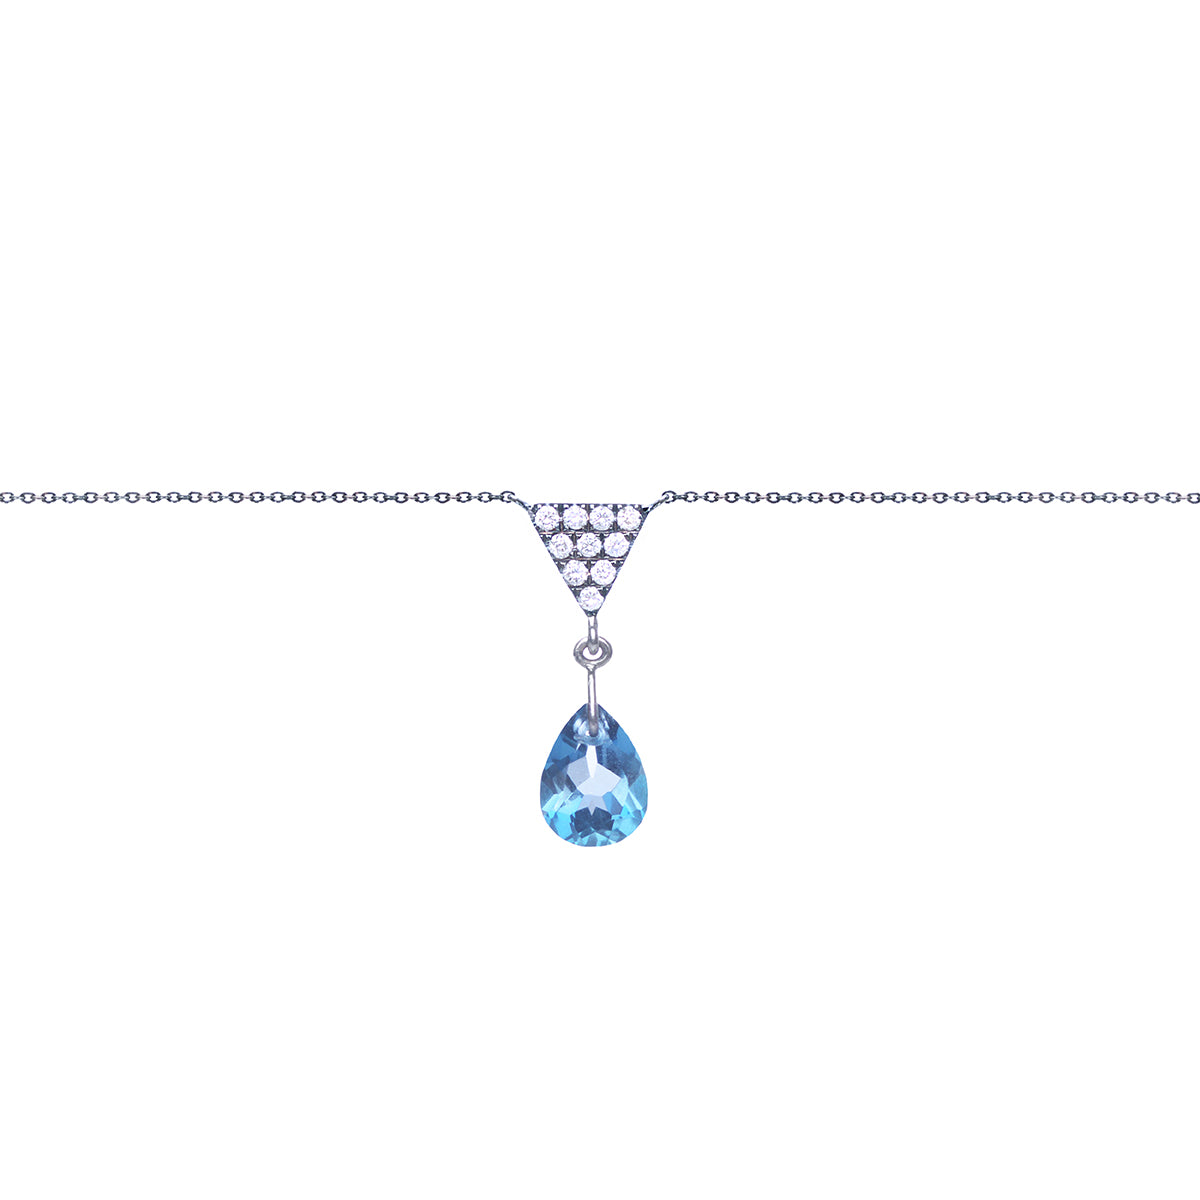 Triangle And London Blue Topaz Charm Necklace Main Image